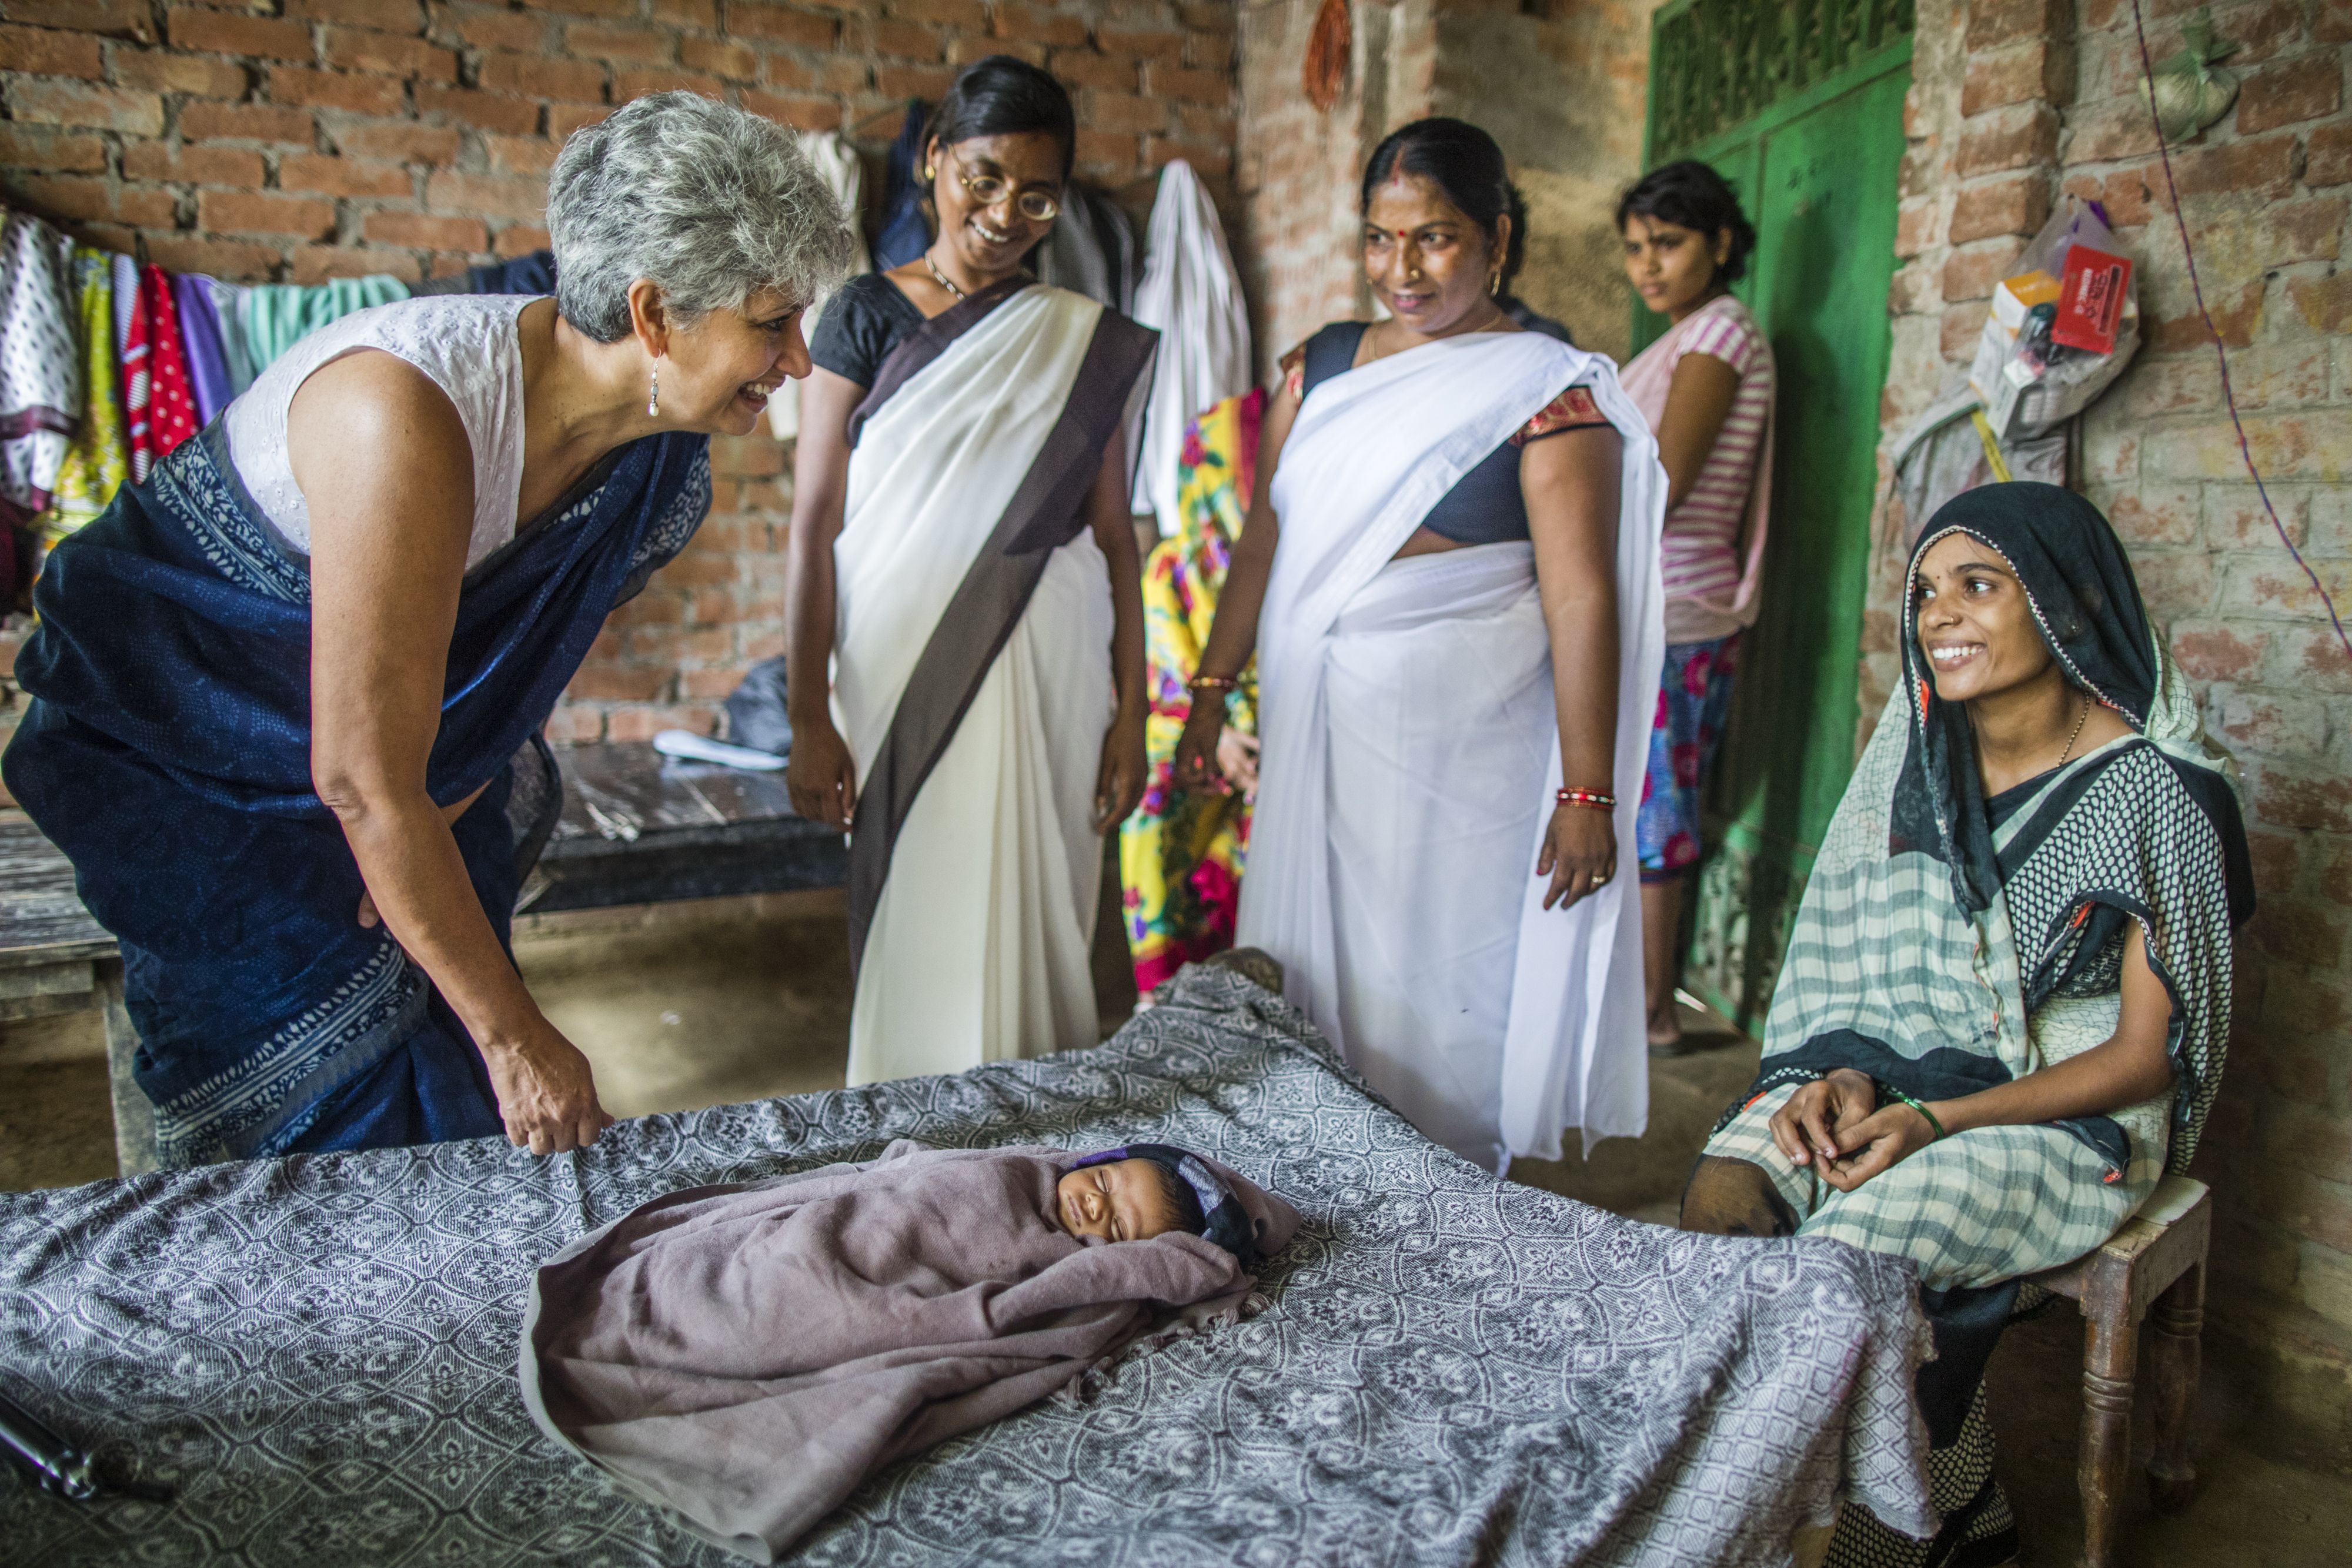 Yasmin is standing next to a bed where a baby is lying down with the mother sitting close by. Two women are standing next to them.